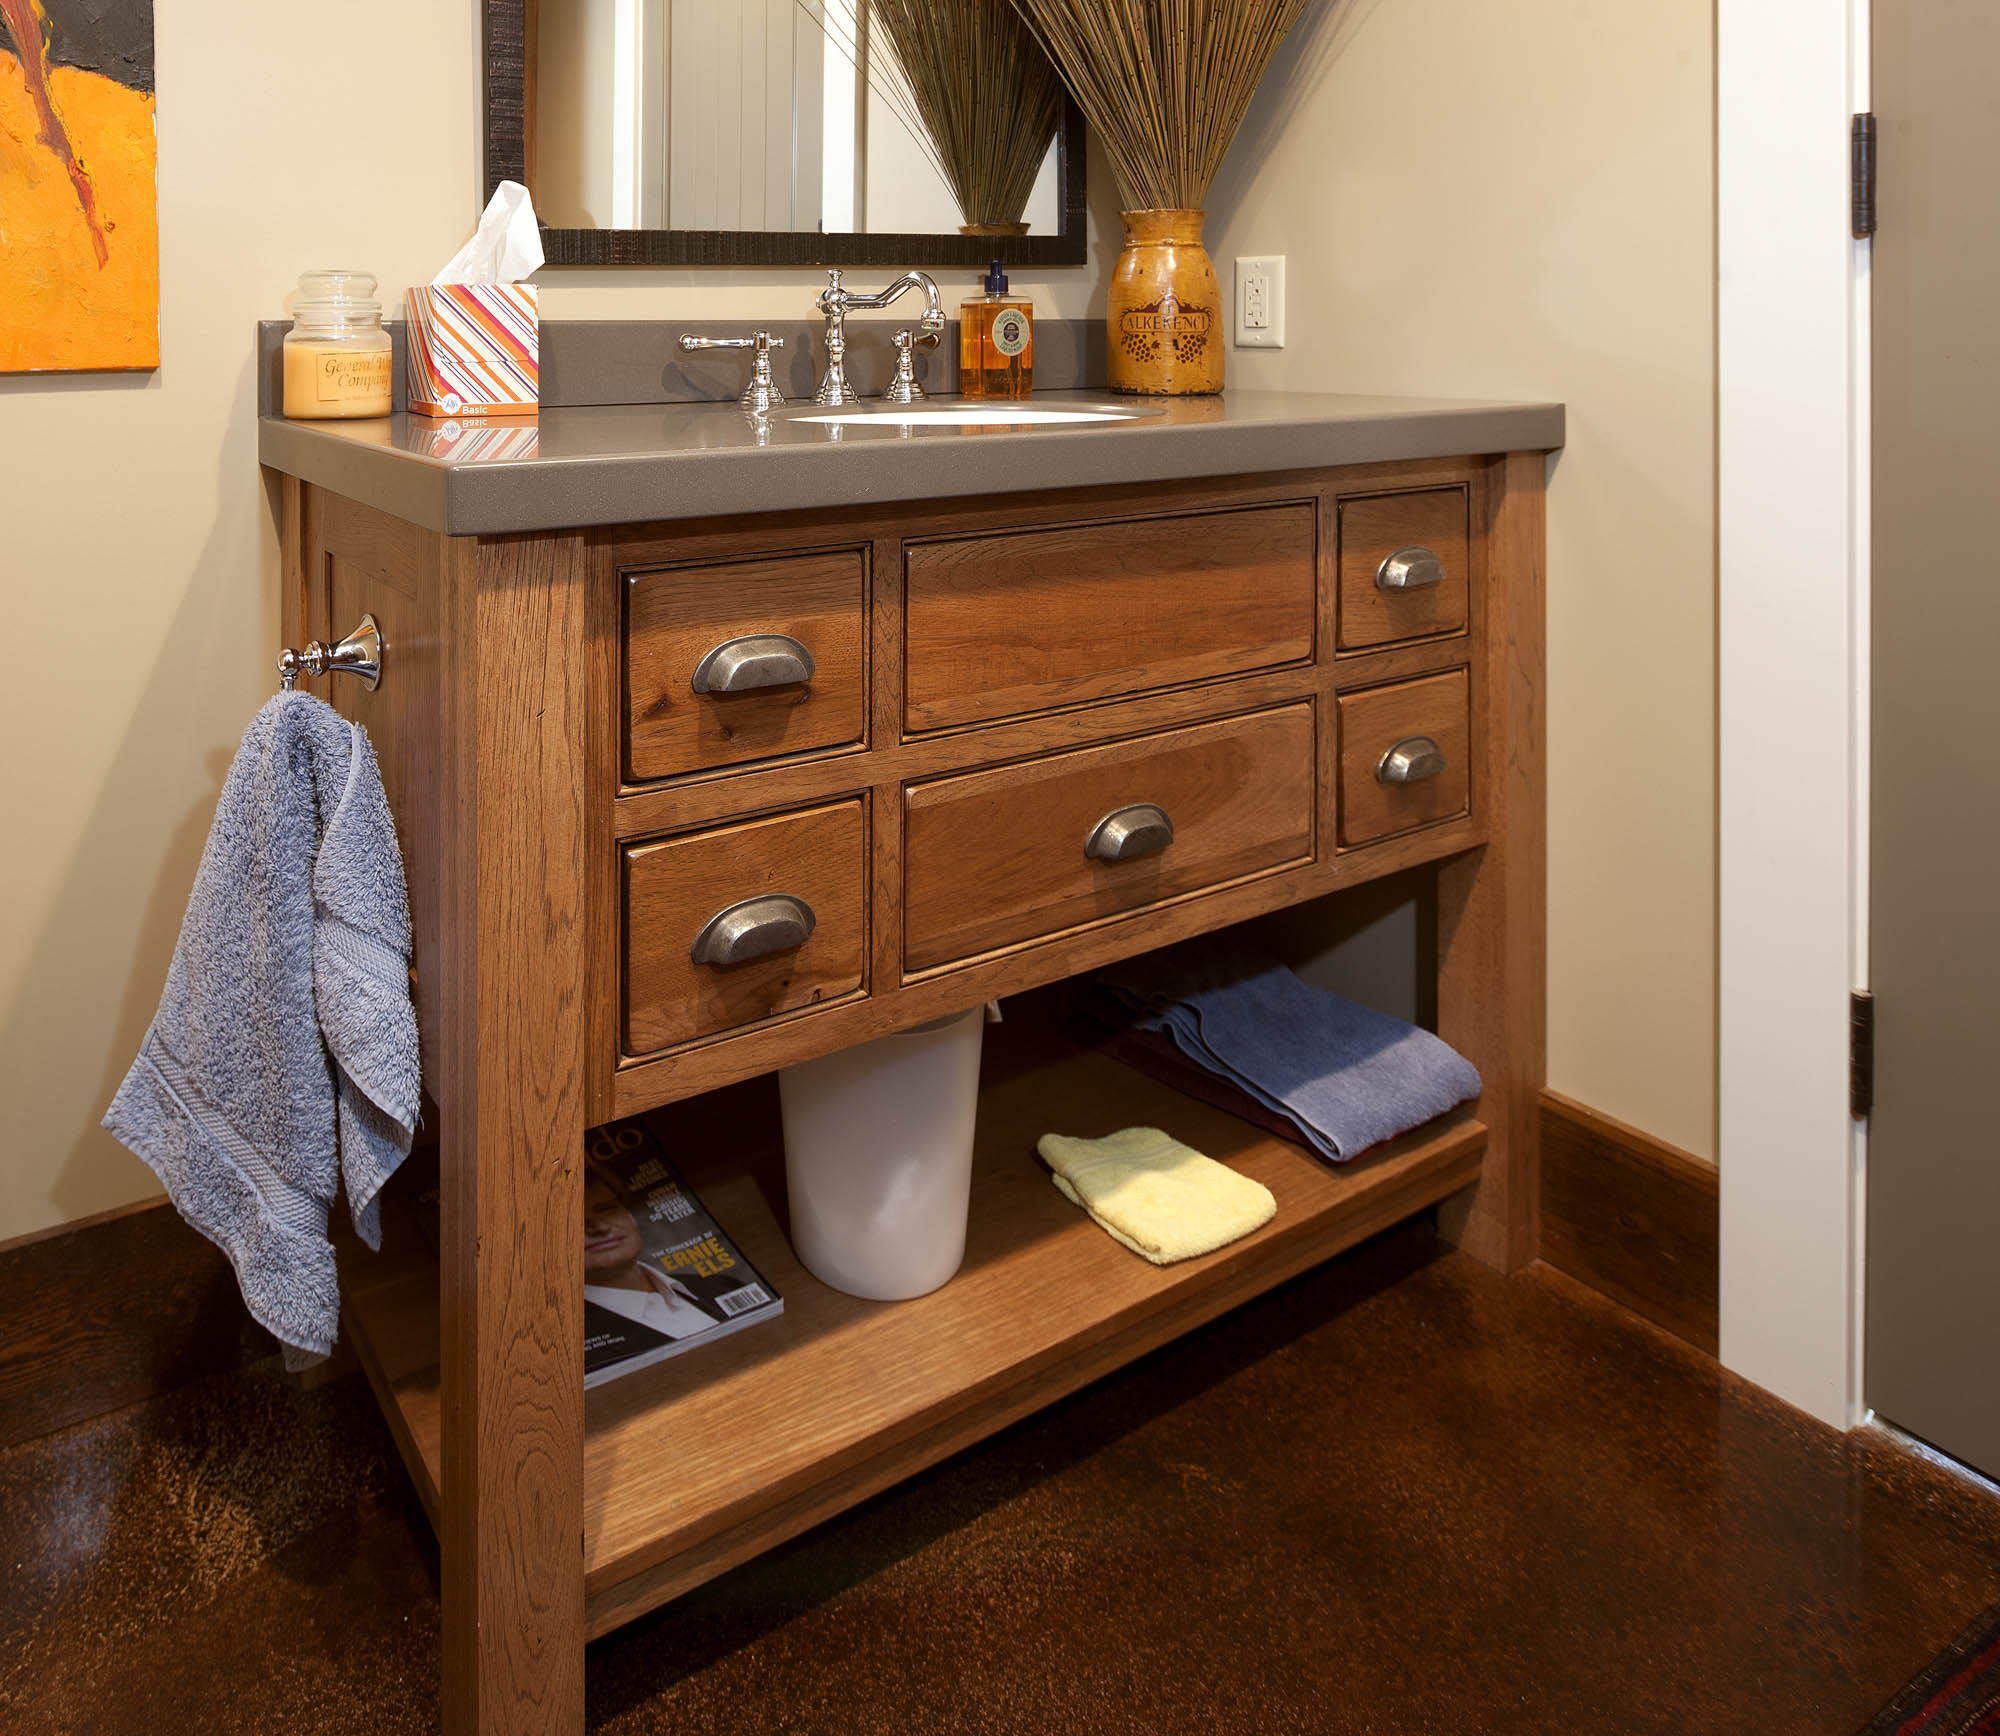 Stained guest bath 1 in Truffle with Ebony Glaze by Showplace Cabinetry